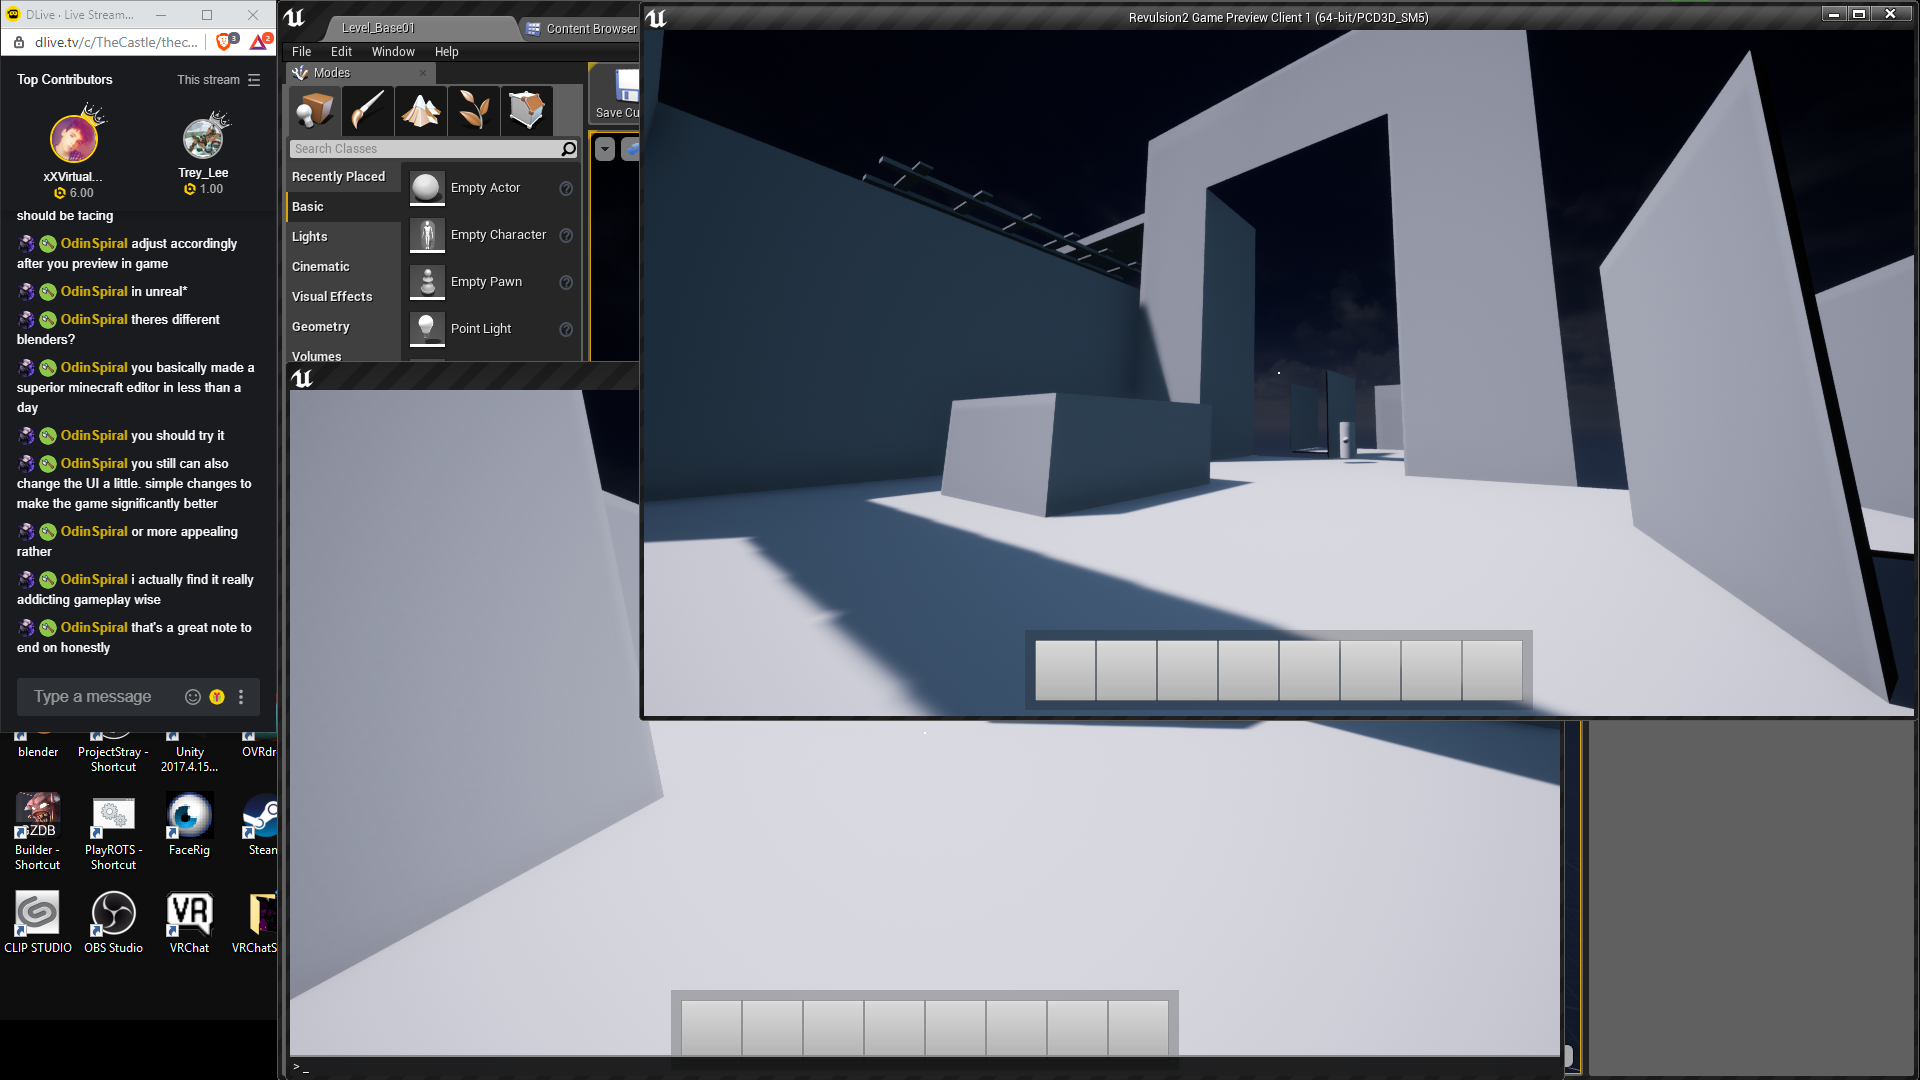 Revulsion :: Revulsion 2 multiplayer in game level editor thoughts